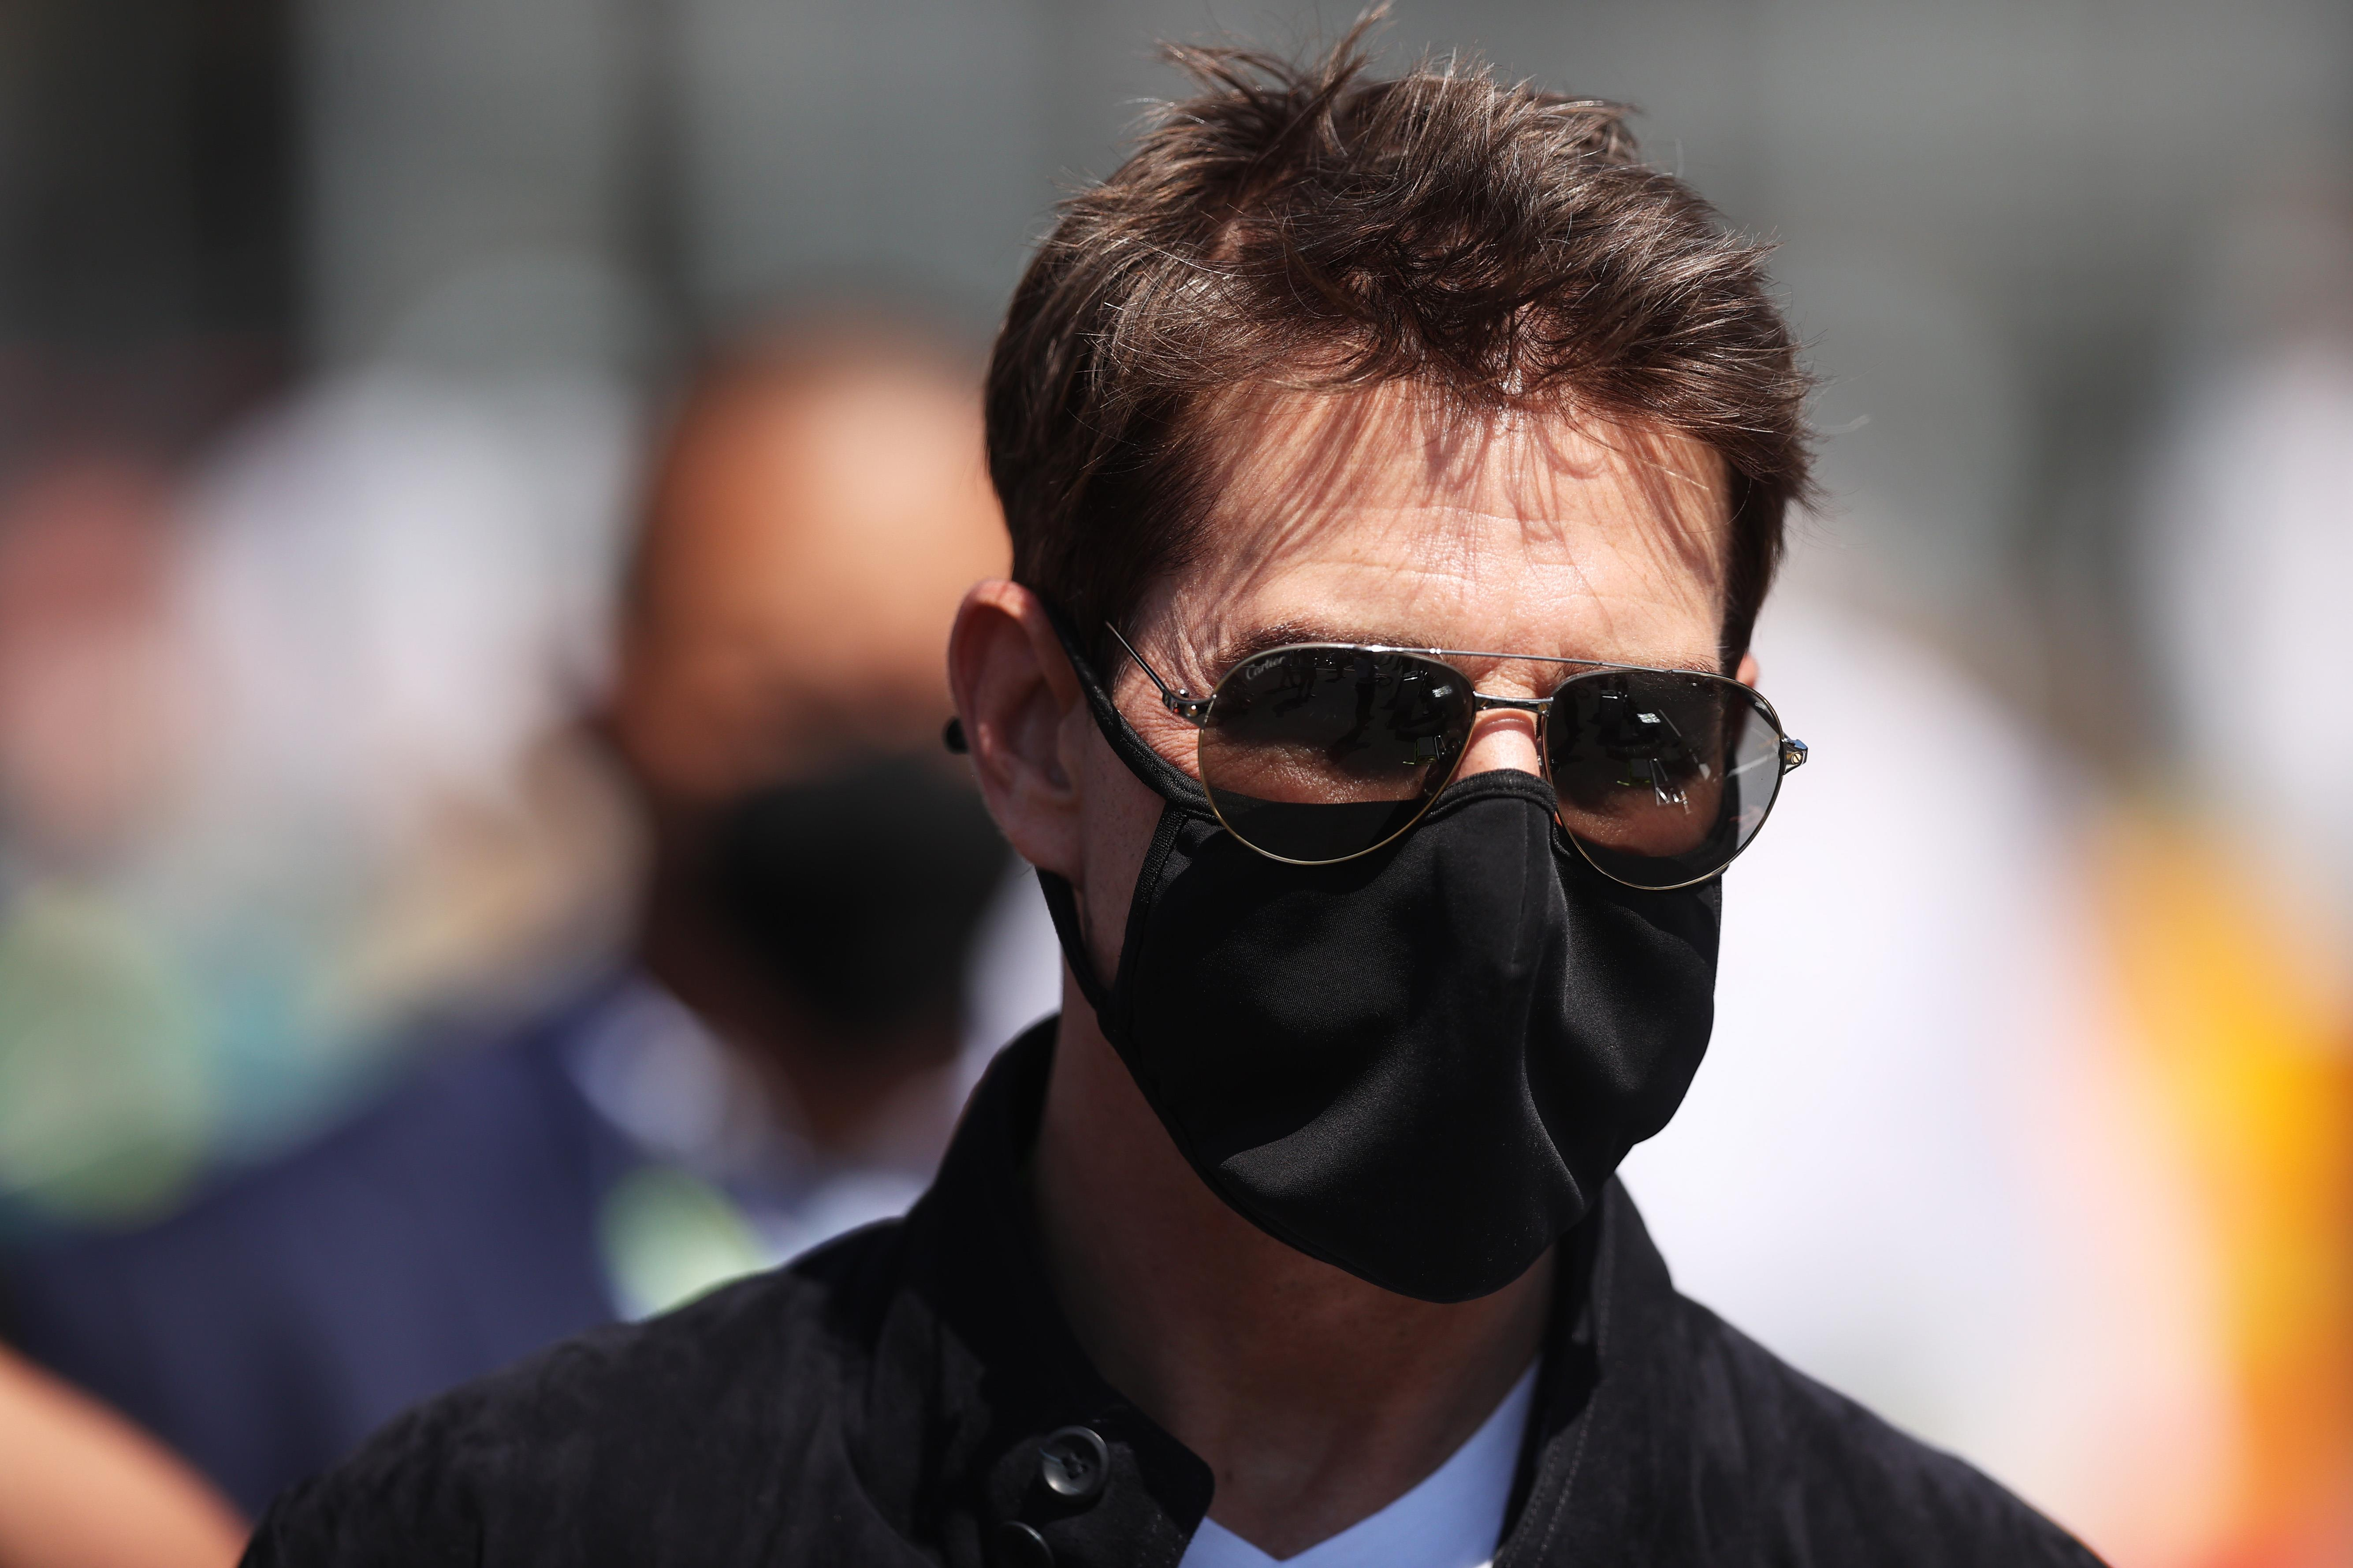 Tom Cruise Films Delayed Due To Covid